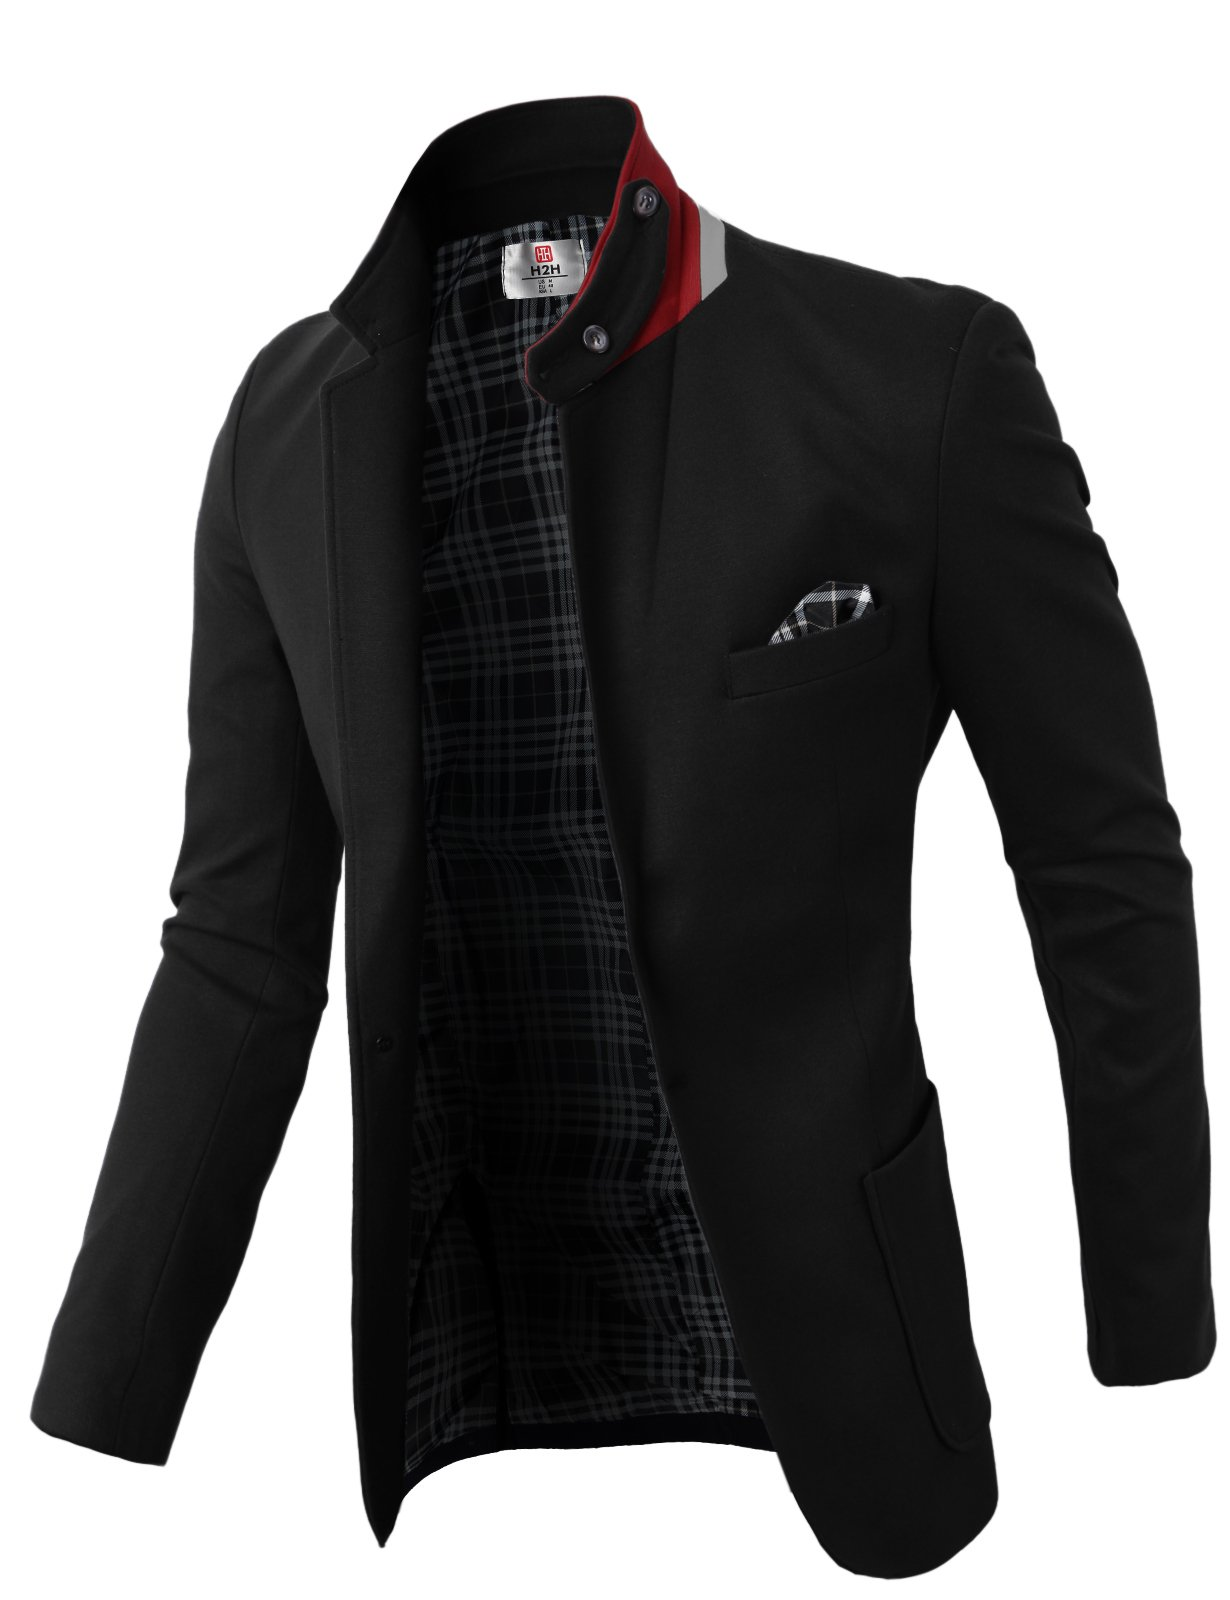 H2H Mens Casual Fashion Slim Fit Blazer Jacket With Snap Collar BLACK US S/Asia M (KMOBL01)